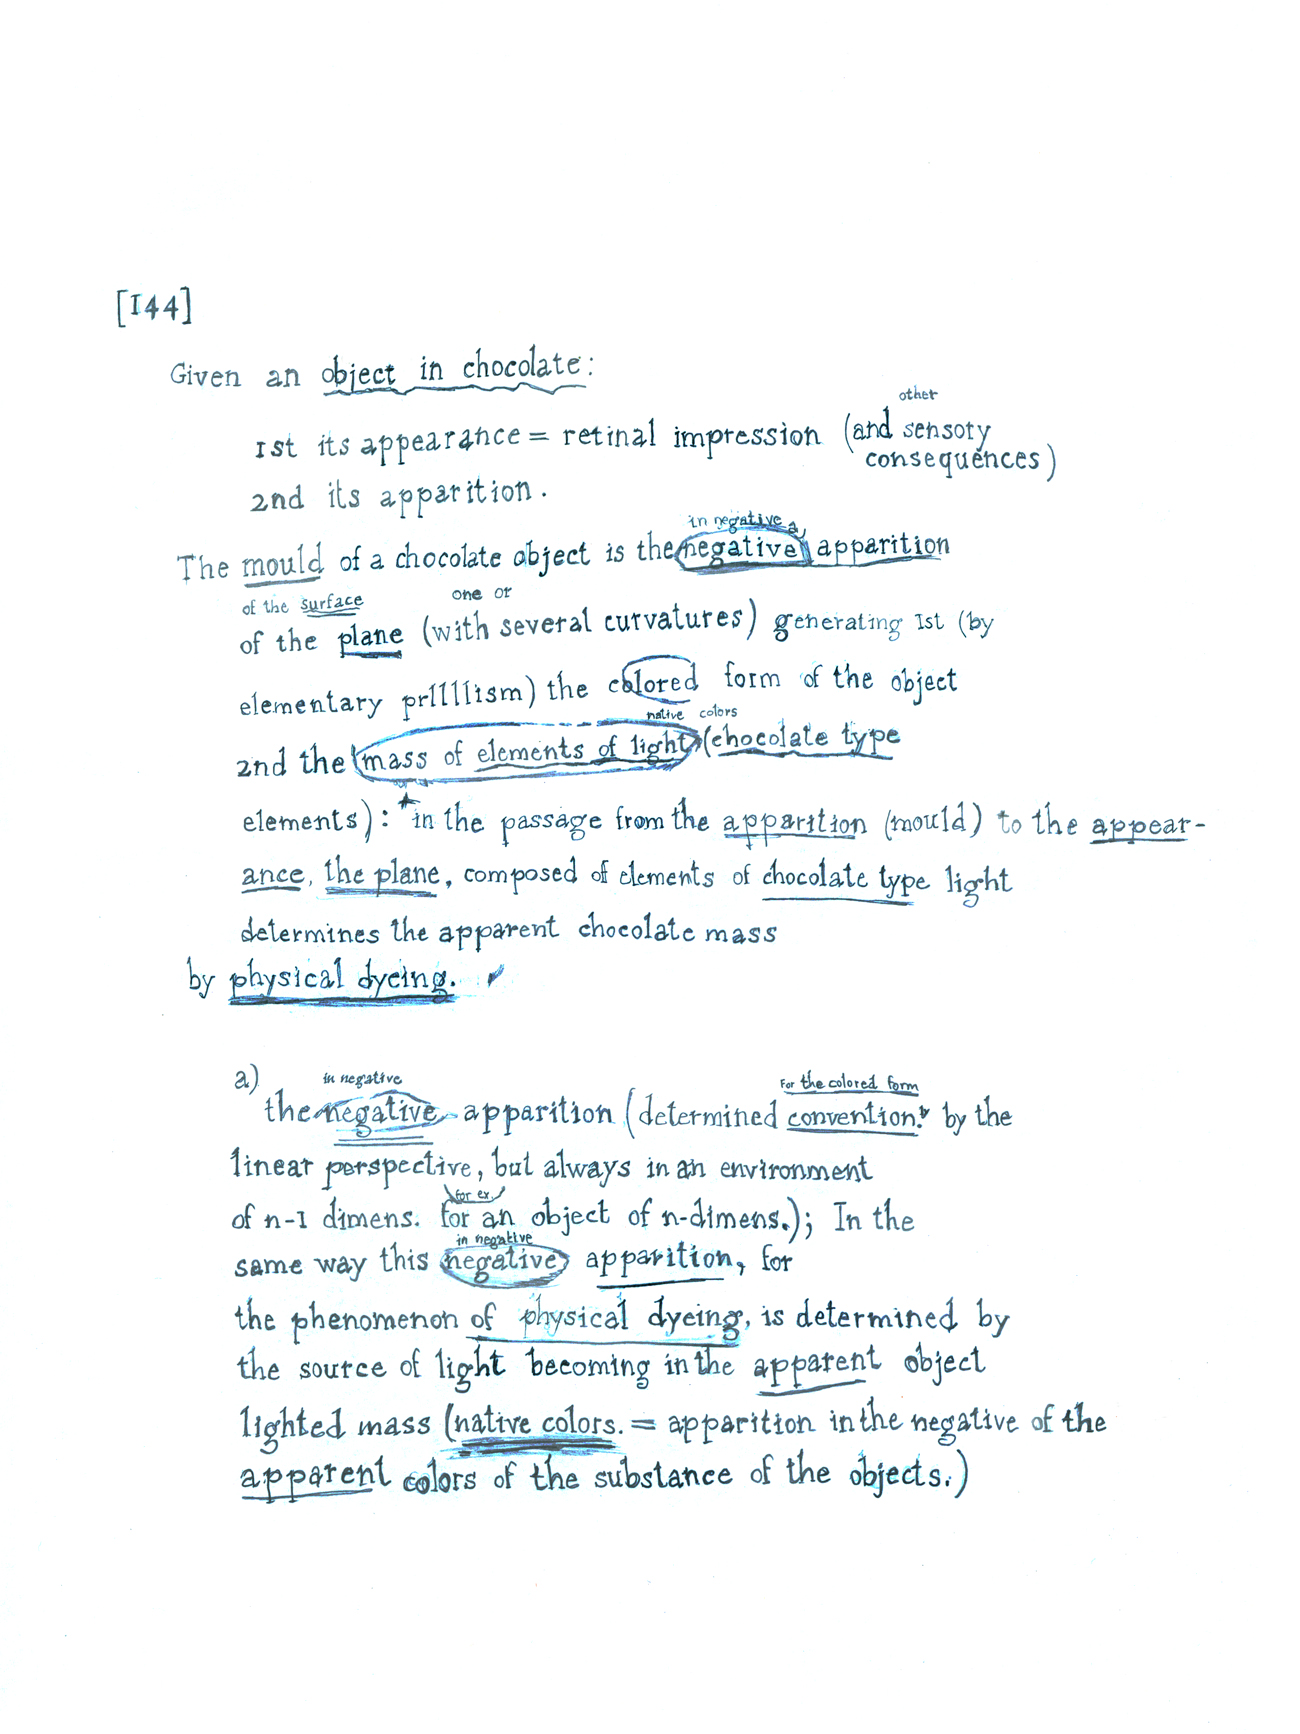 drawn reproduction of page from Duchamp's notes for large glass